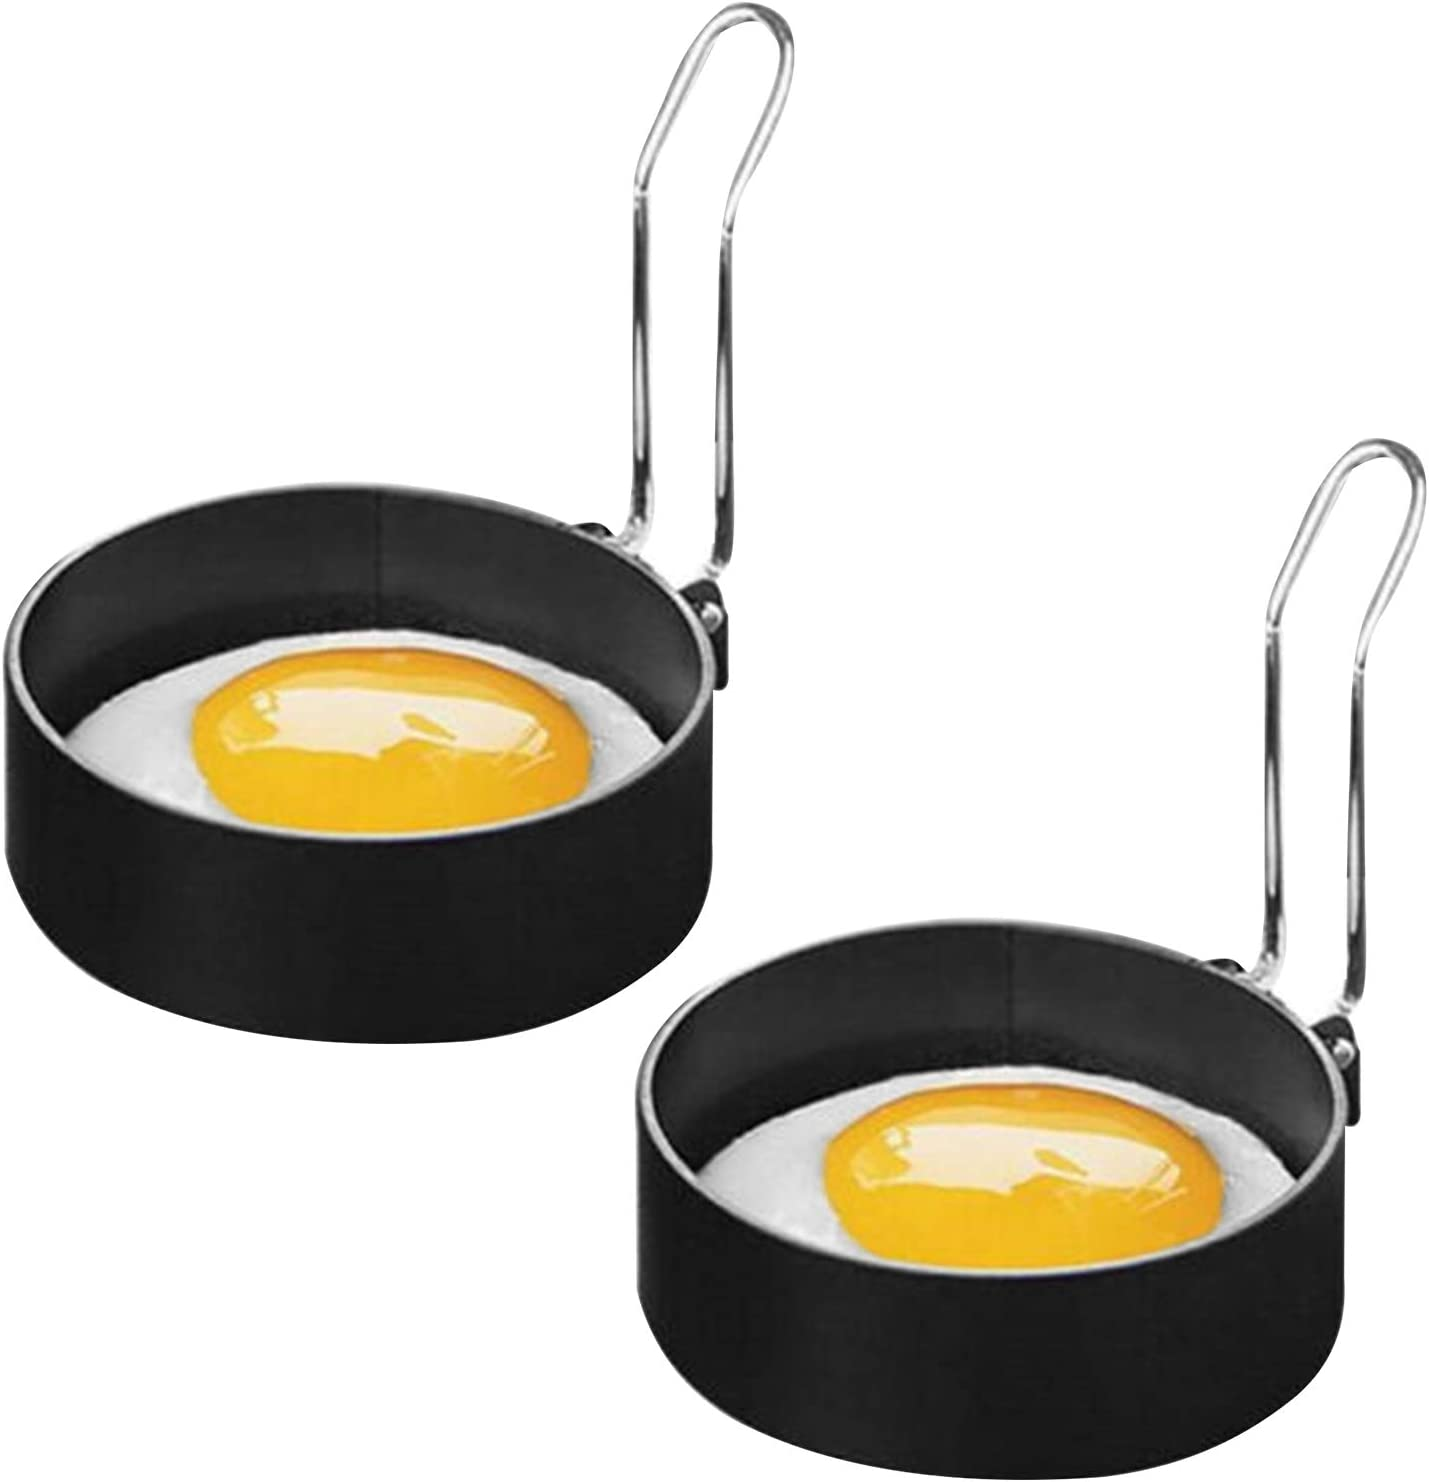 Soapow 2pcs Non-Stick Fresno Mall Metal Egg Mold Spring new work one after another Circle Frying Fried Perfect